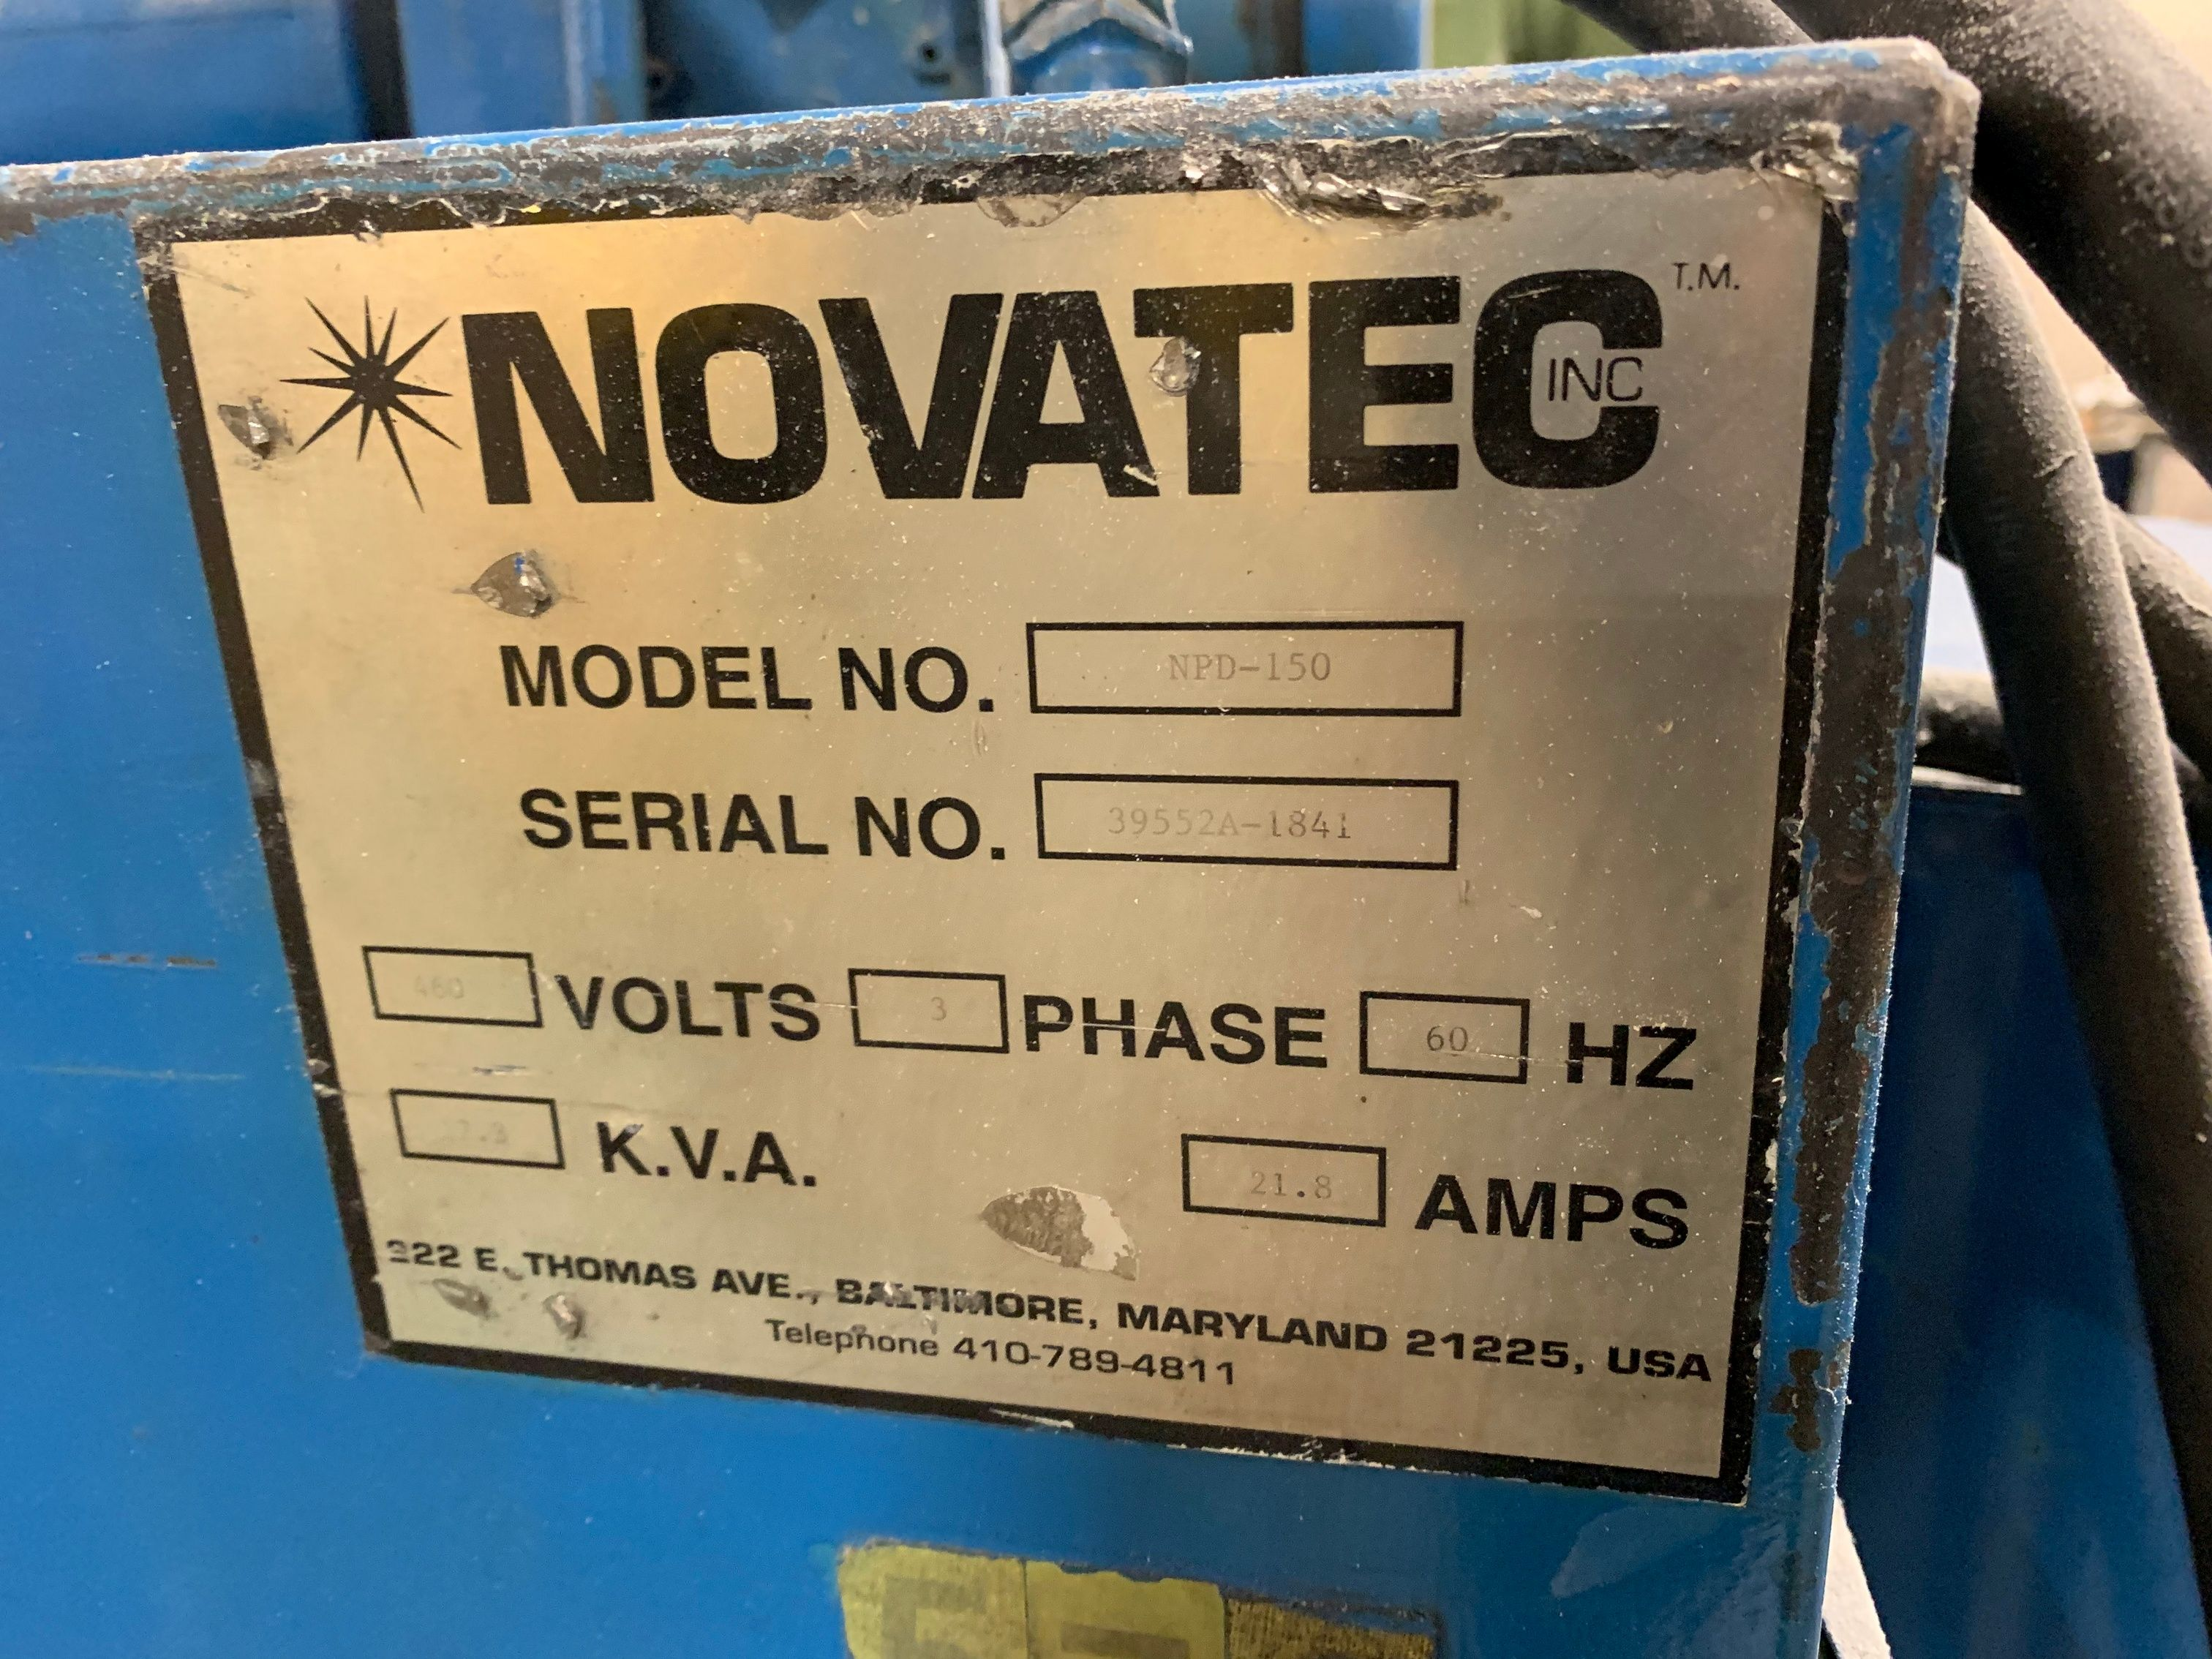 Lotto 91 - NOVATEC MODEL NPD-150 RESIN DRYER; S/N 39552A-1841